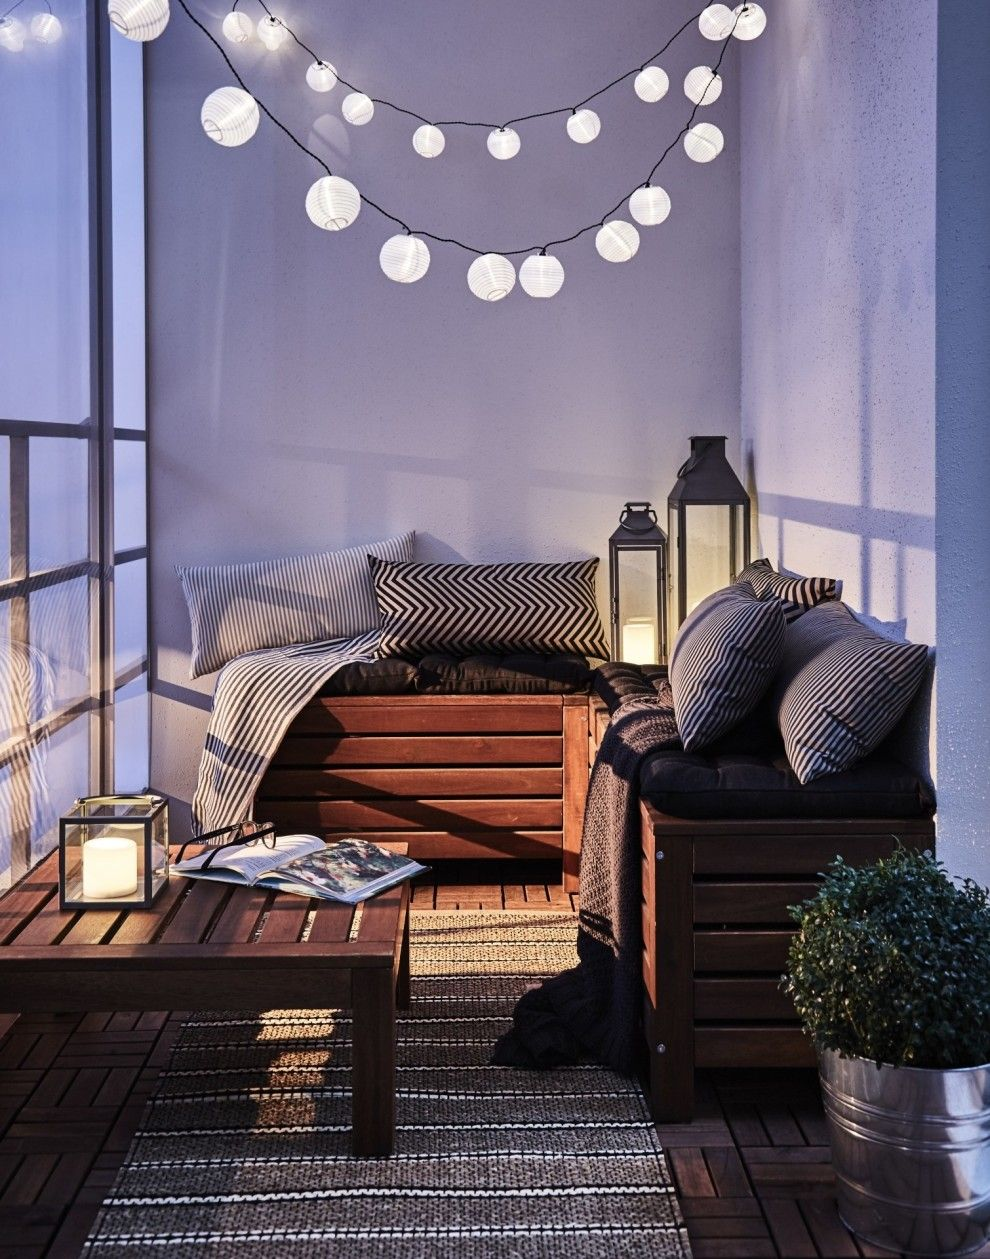 12 IKEA® Products That Will Transform Your Backyard Into A Magical Palace #smallbalconyfurniture